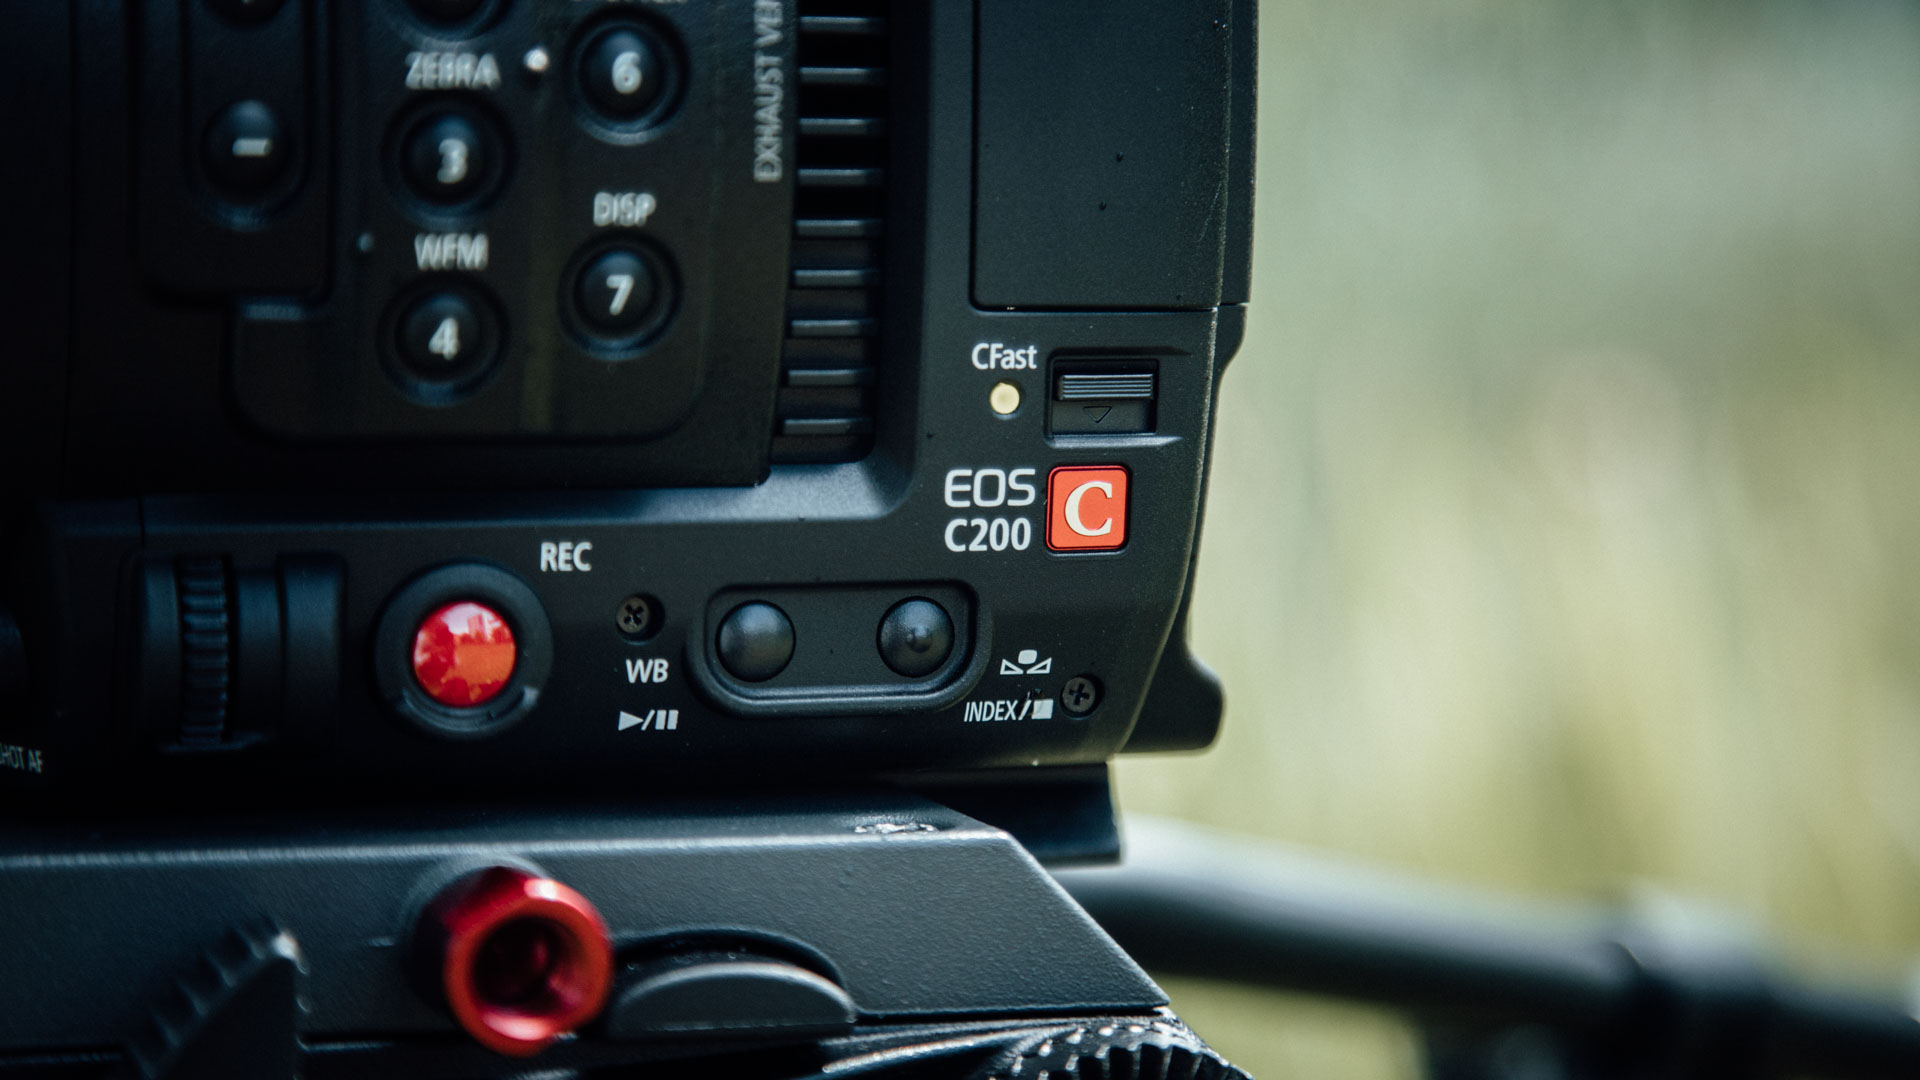 Canon C200 Review - Impressive RAW Footage & Ergonomics For Little